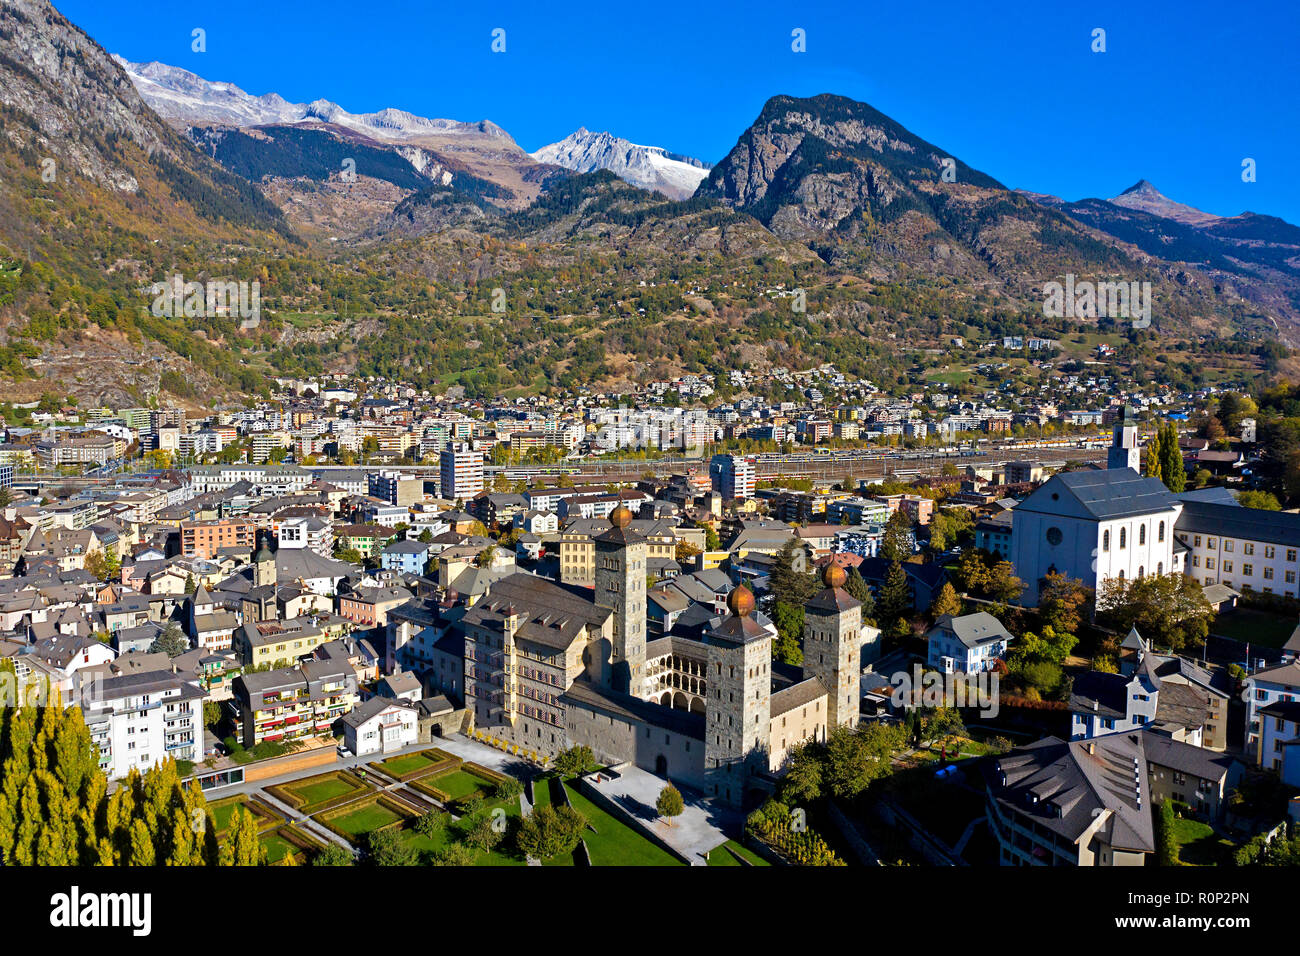 The town of Brig with the medieval castle Stockalperpalast, Brig, Valais, Switzerland - Stock Image